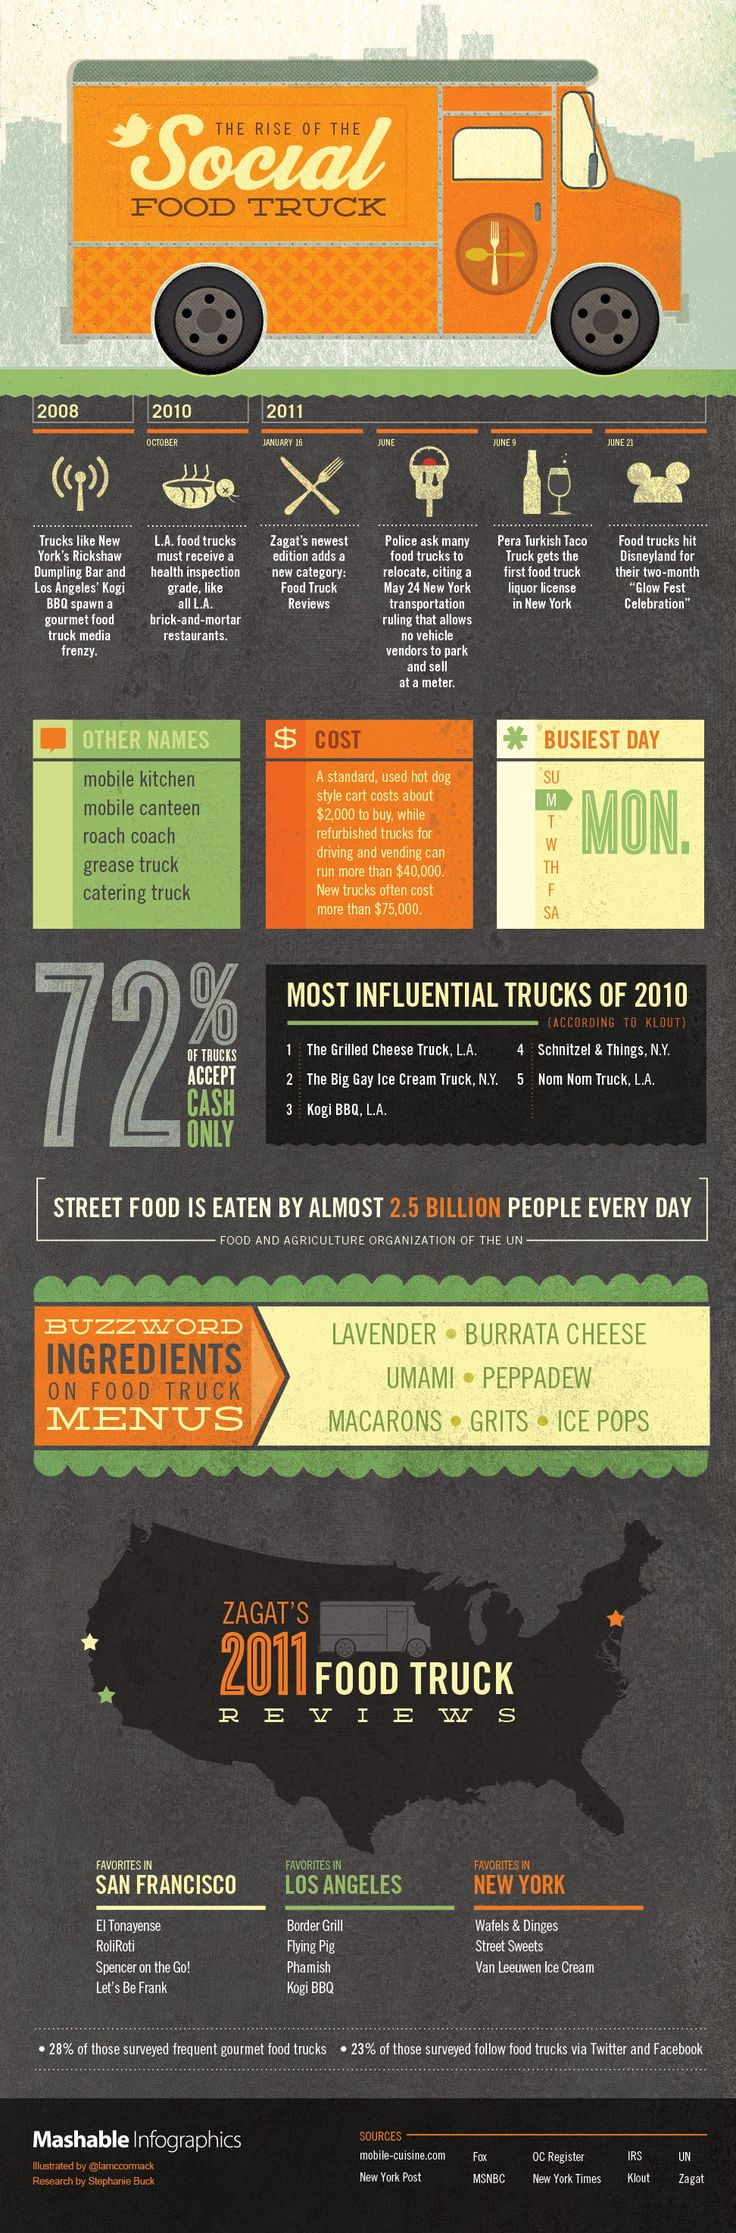 the rise of the social food truck